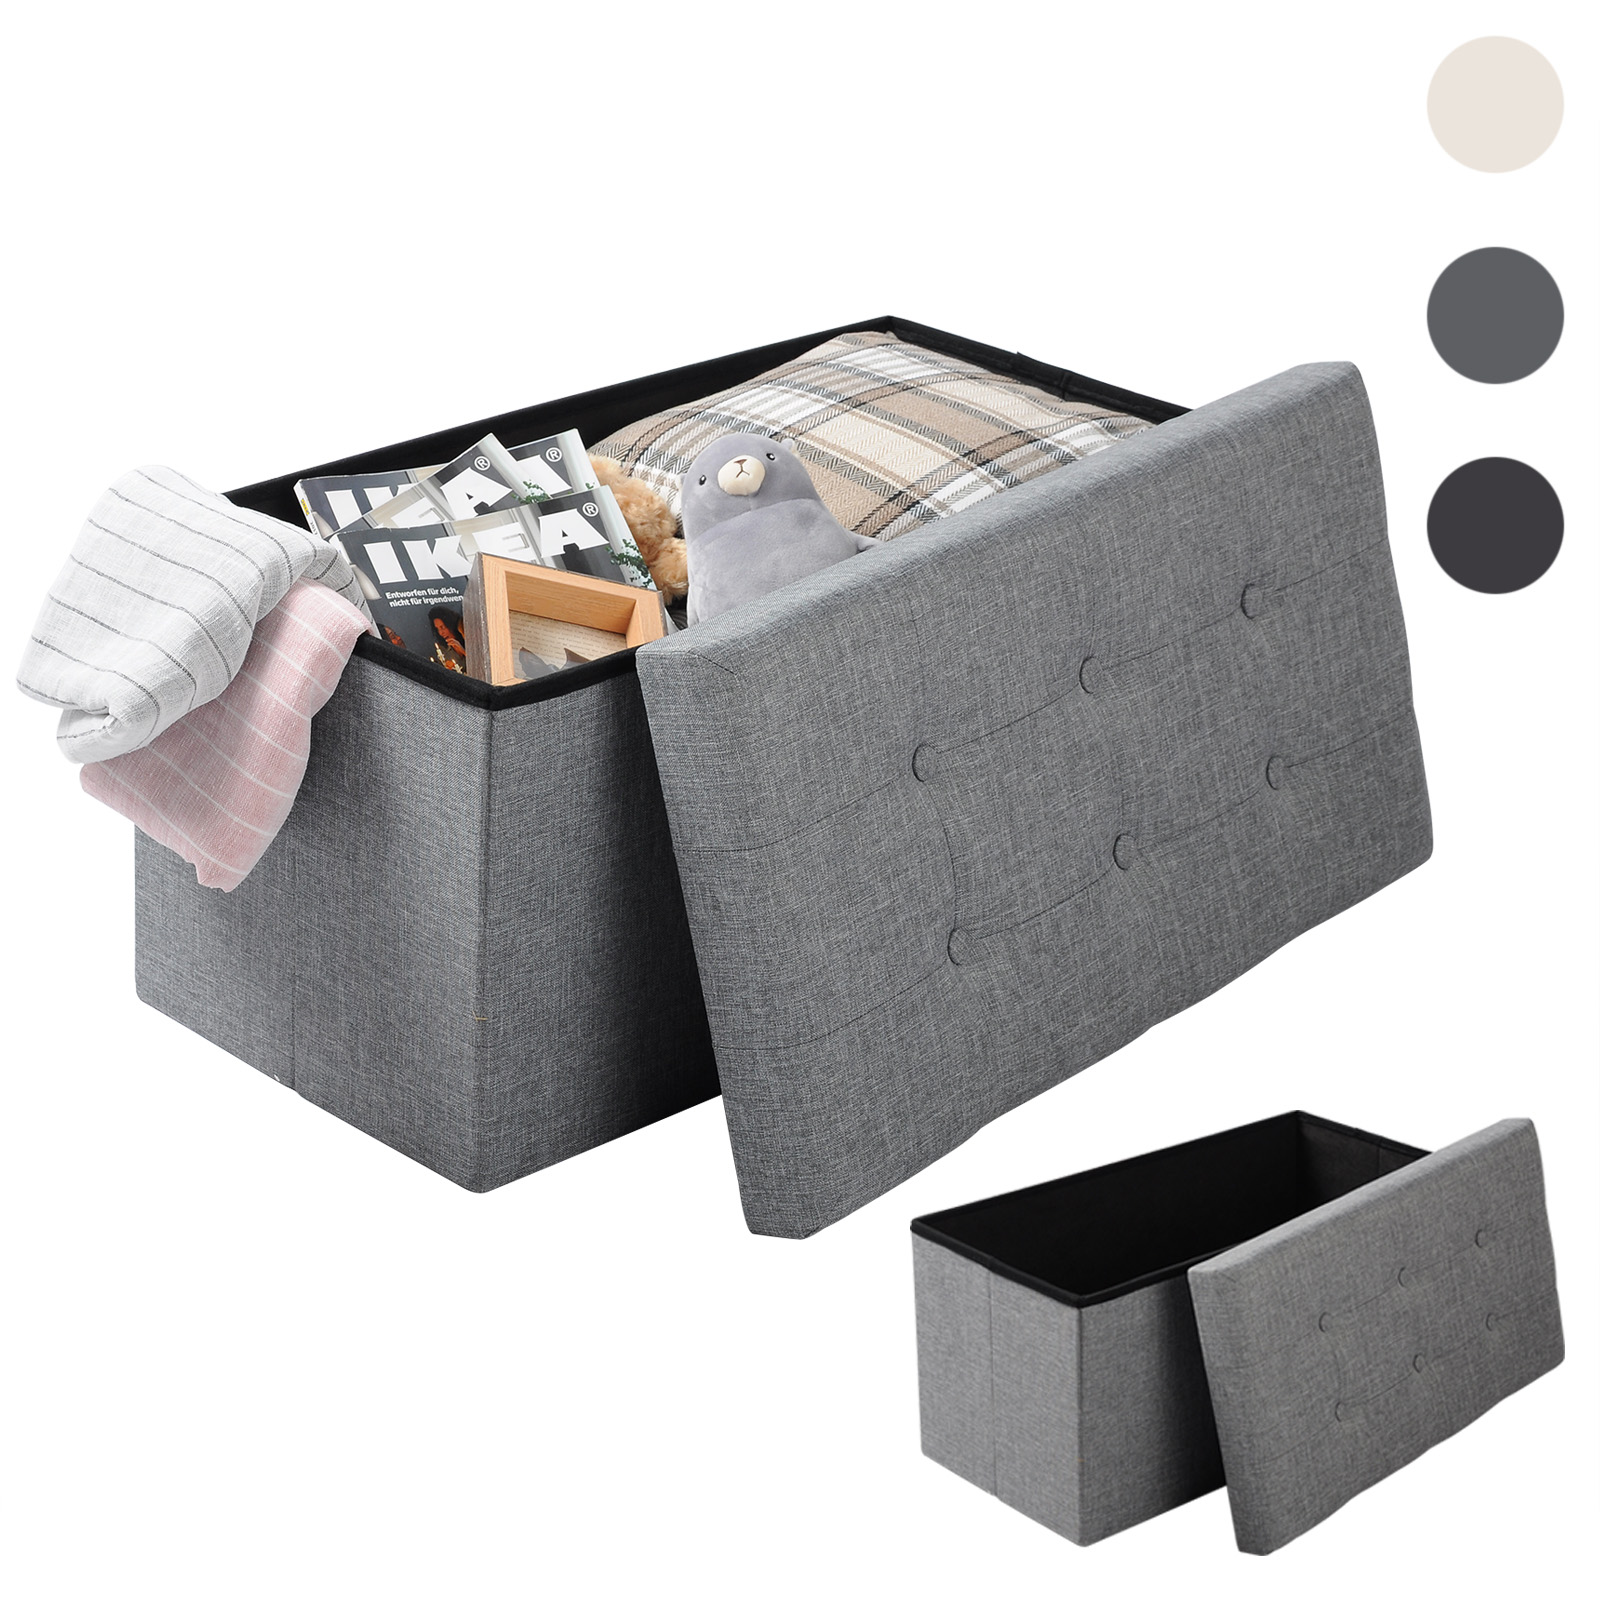 banc ottomane pouf tabouret pliable coffre de rangement si ge banquette f204 ebay. Black Bedroom Furniture Sets. Home Design Ideas